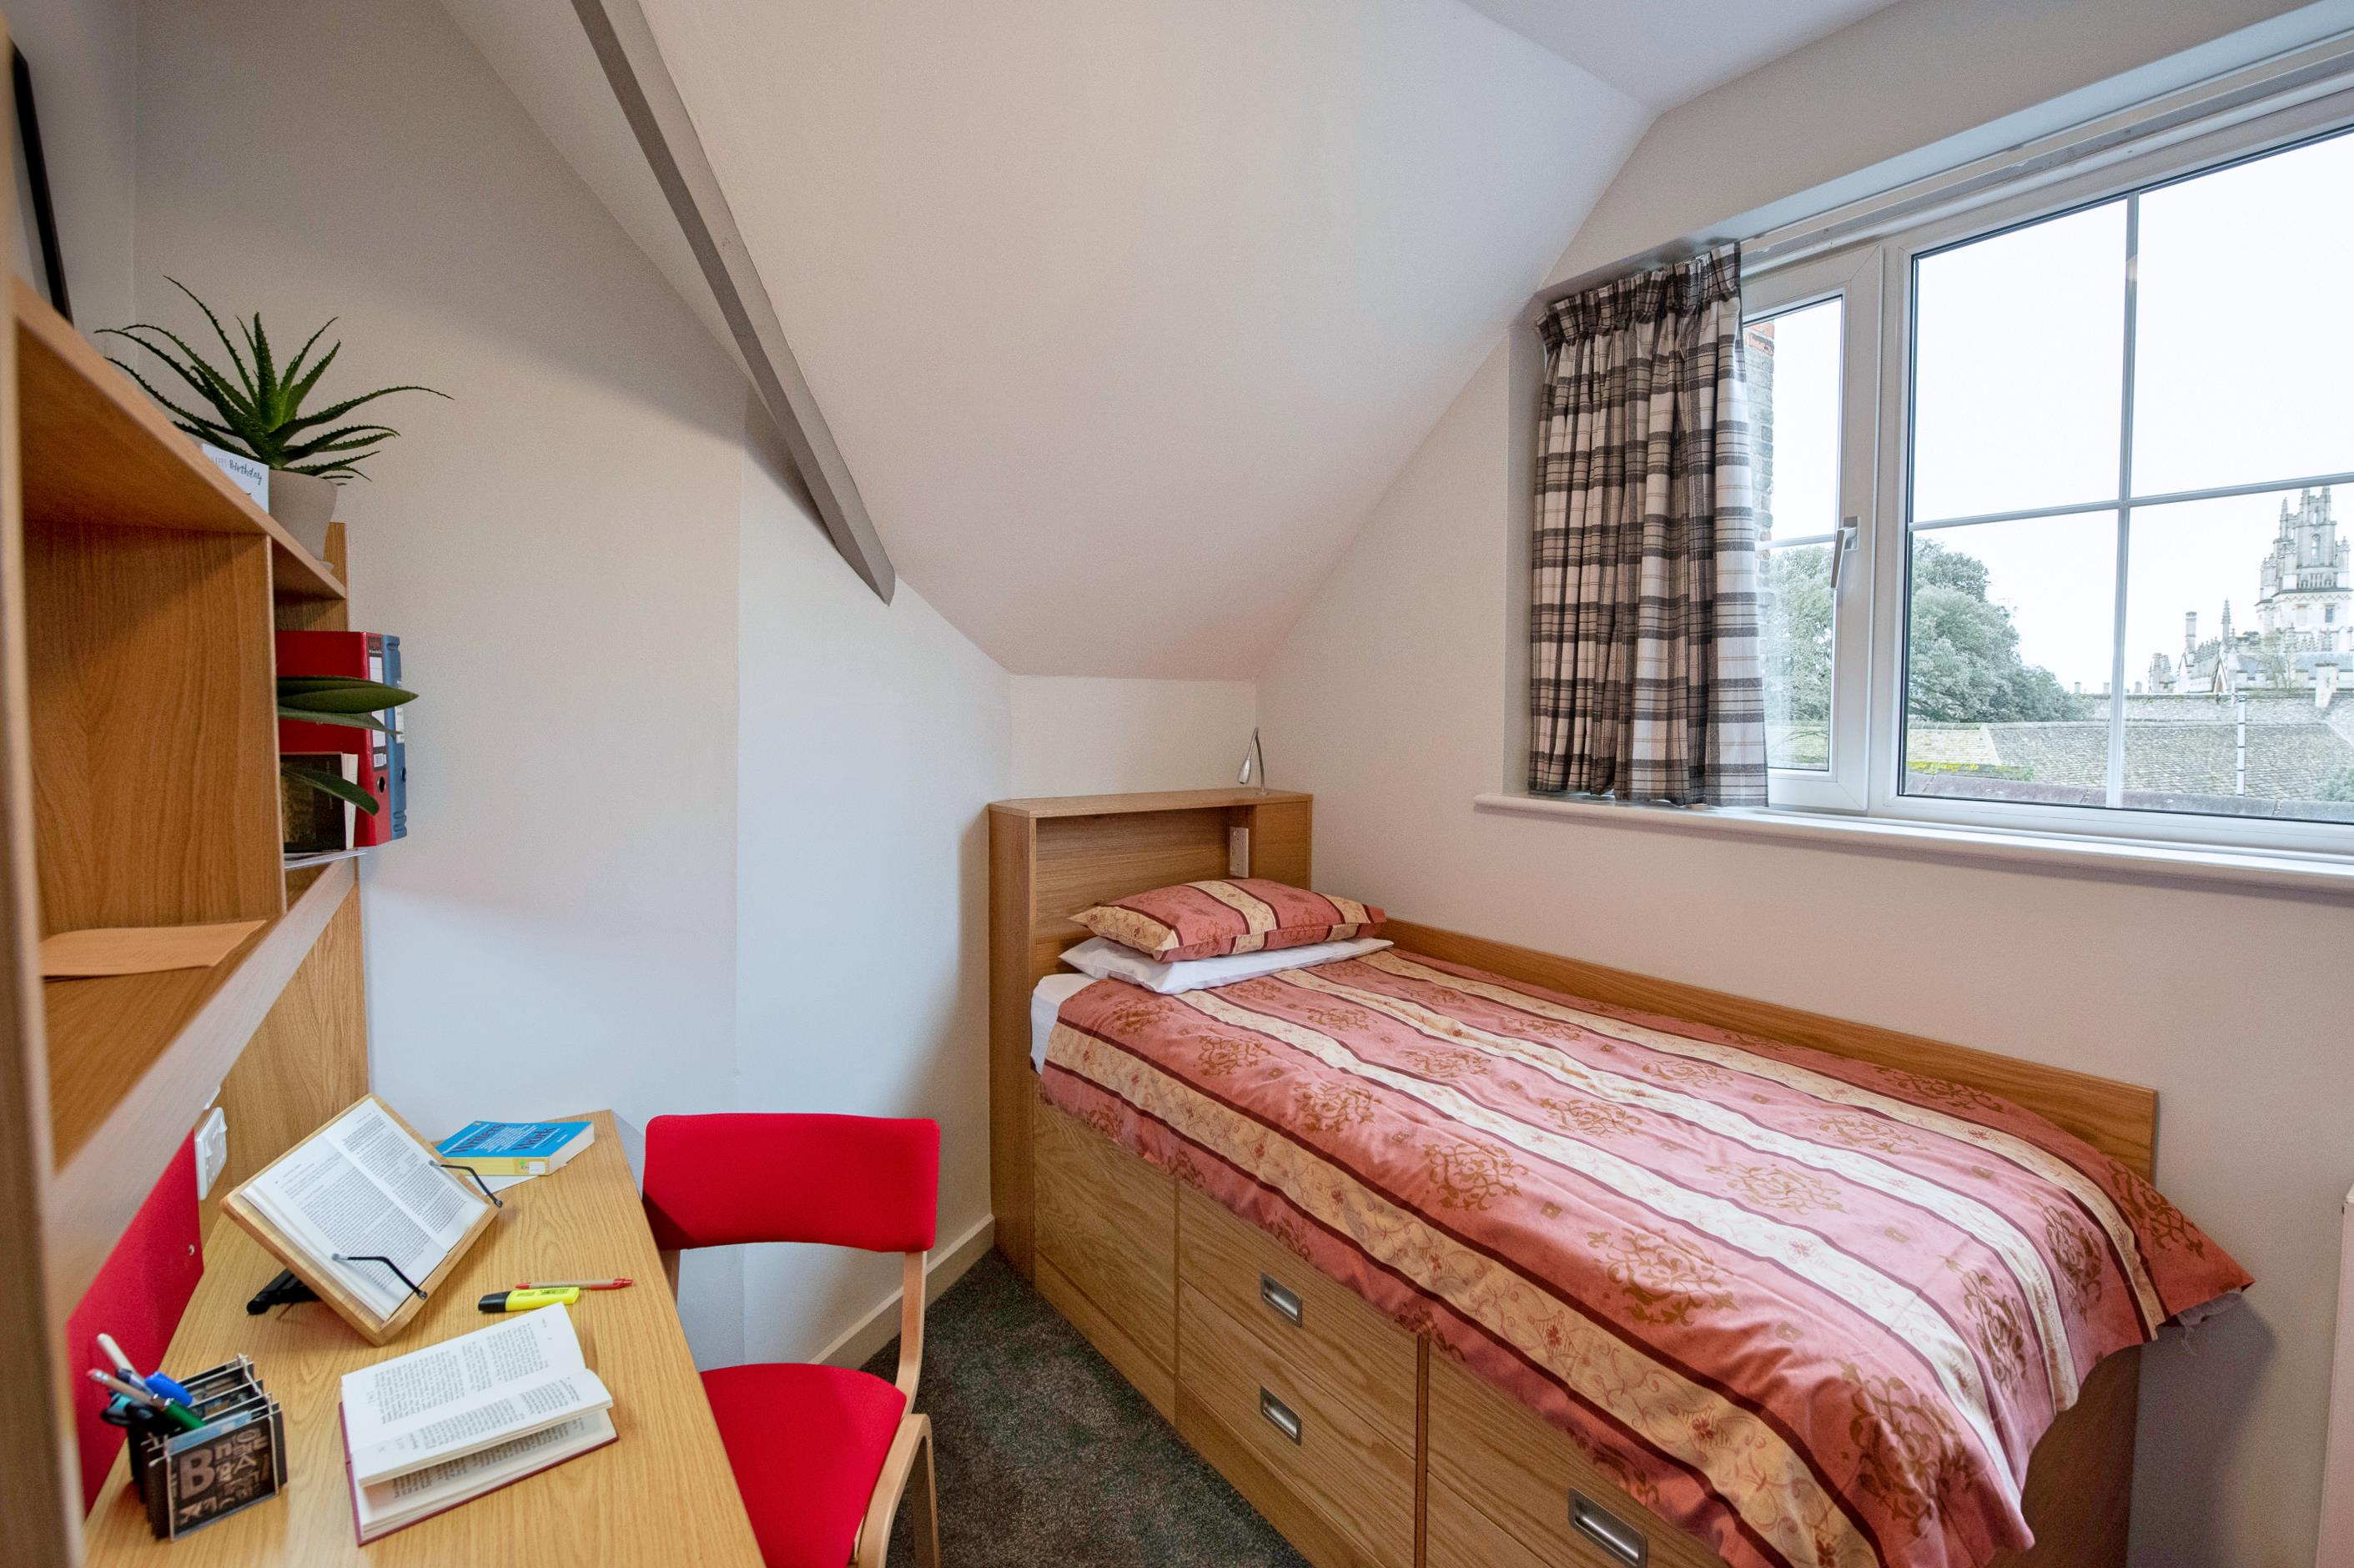 A student bedroom with a dormer ceiling line. There is a bed and desk and a window.